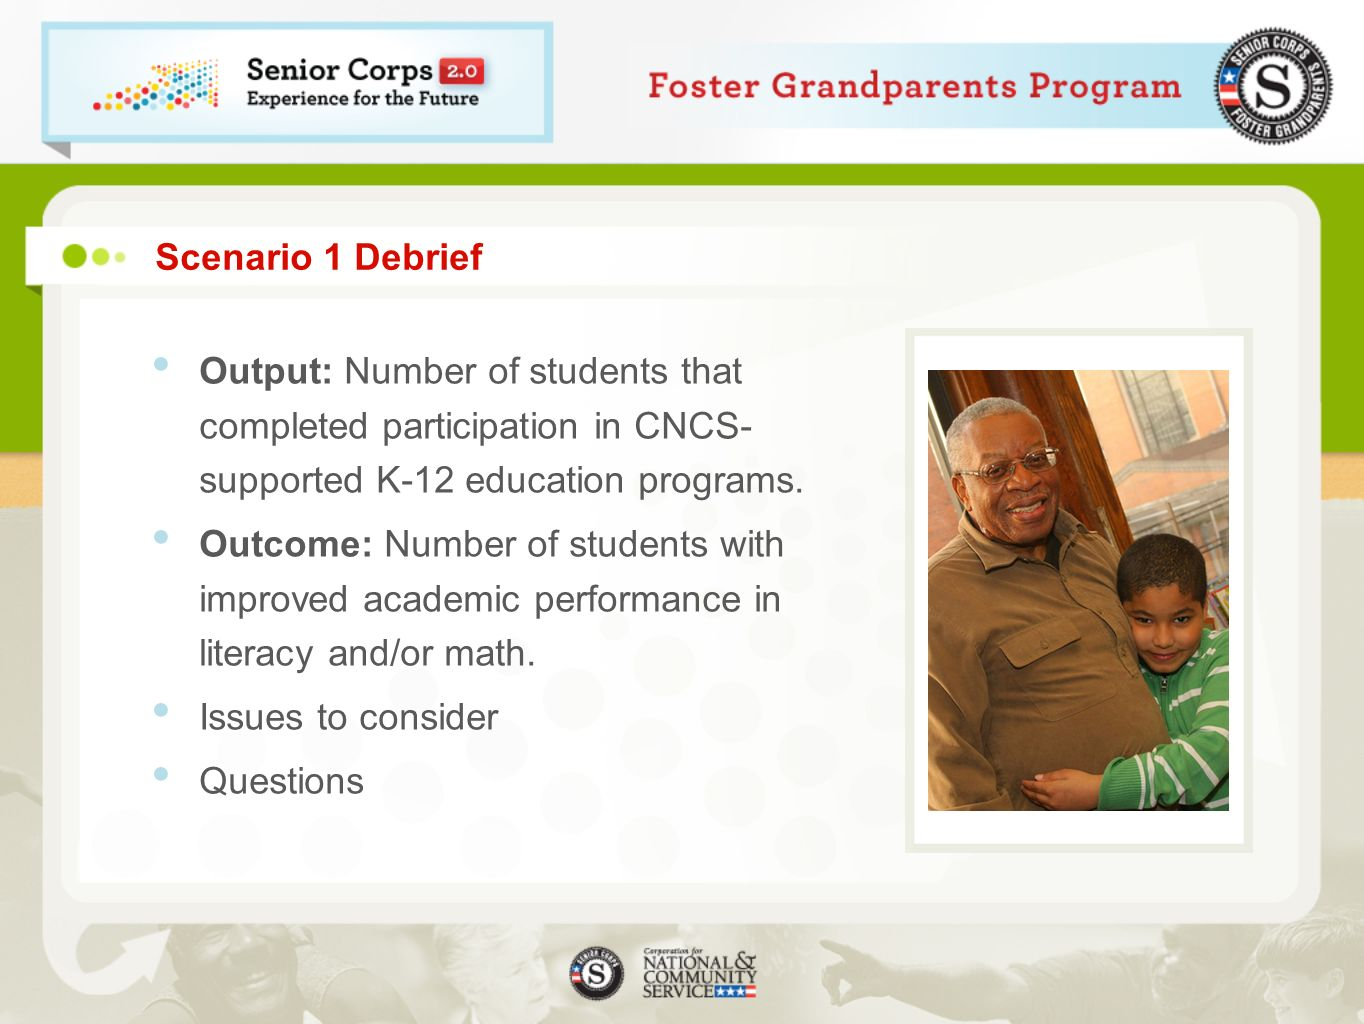 Scenario 1 Debrief Output: Number of students that completed participation in CNCS-supported K-12 education programs.